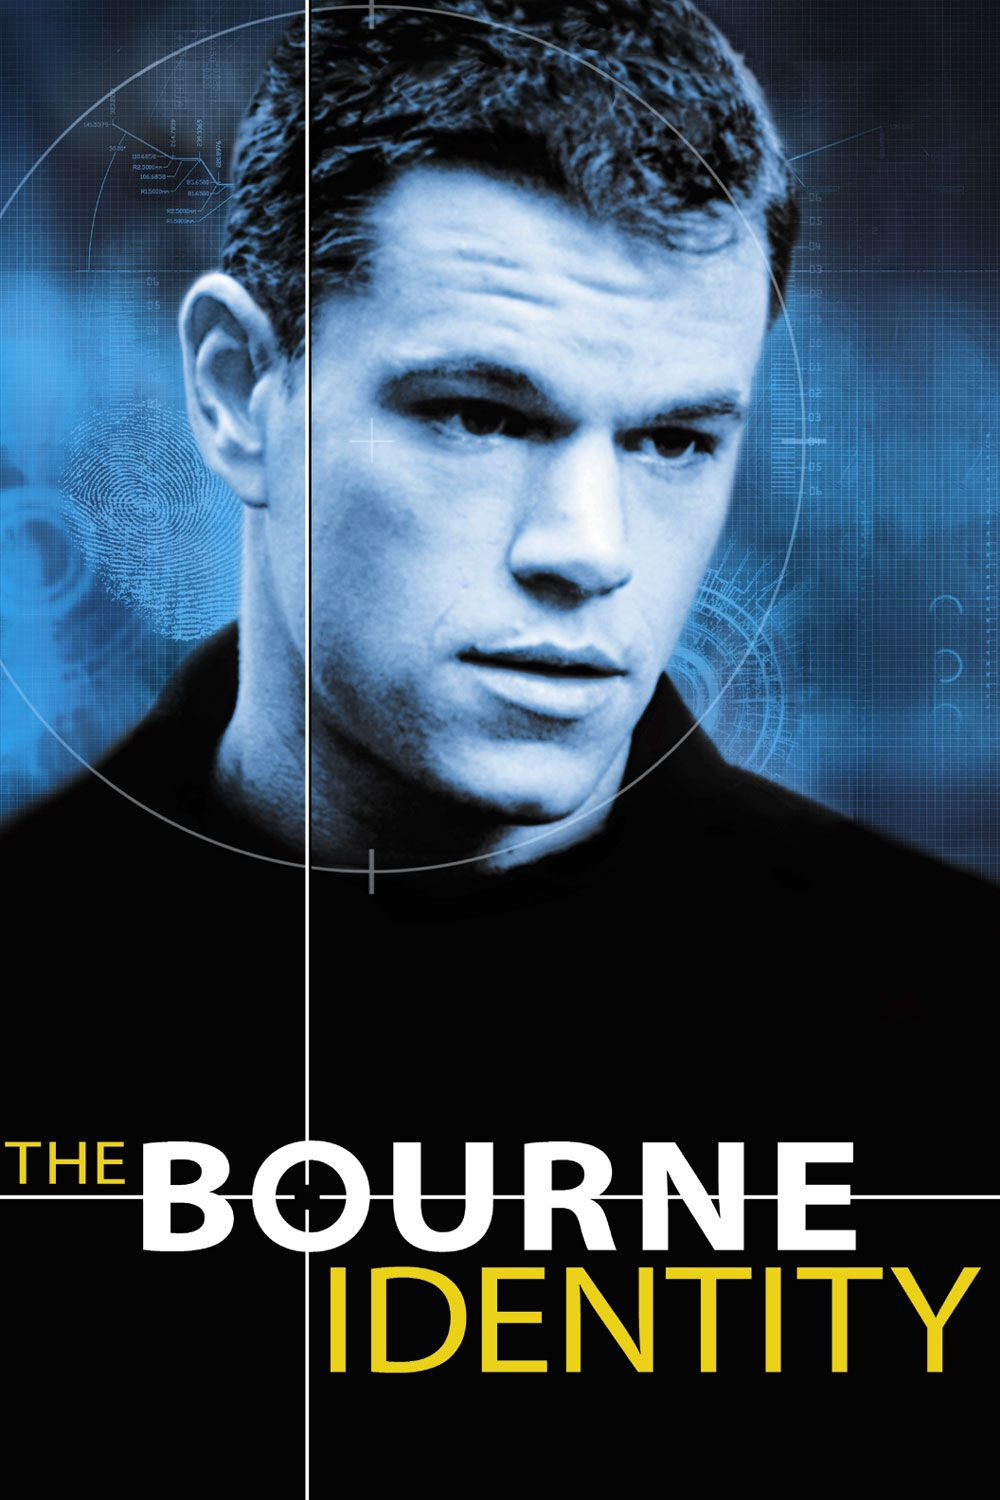 Google Image Result For Http Oneguyrambling Com Wp Content Uploads 2012 06 Bourne Identity The 5 Jpg Bourne Movies The Bourne Identity Action Movies